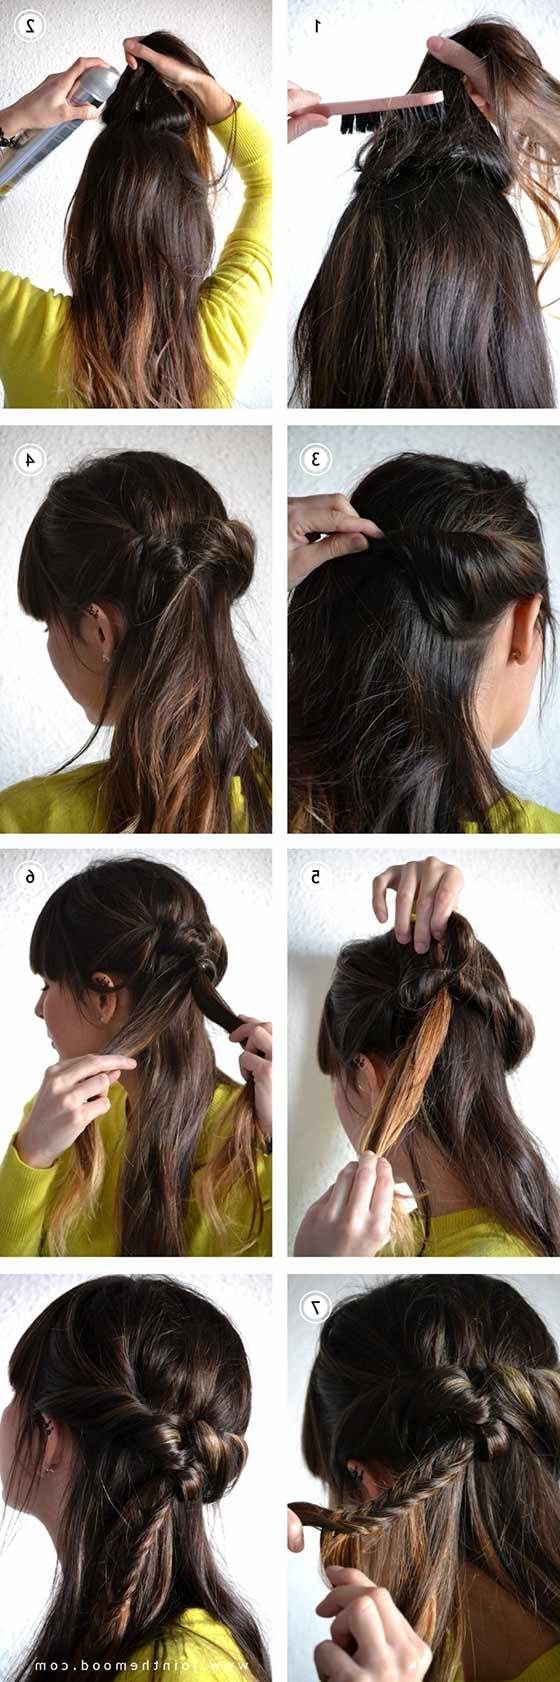 40 Braided Hairstyles For Long Hair Throughout Most Up To Date Beautifully Braided Ponytail Hairstyles (View 4 of 20)